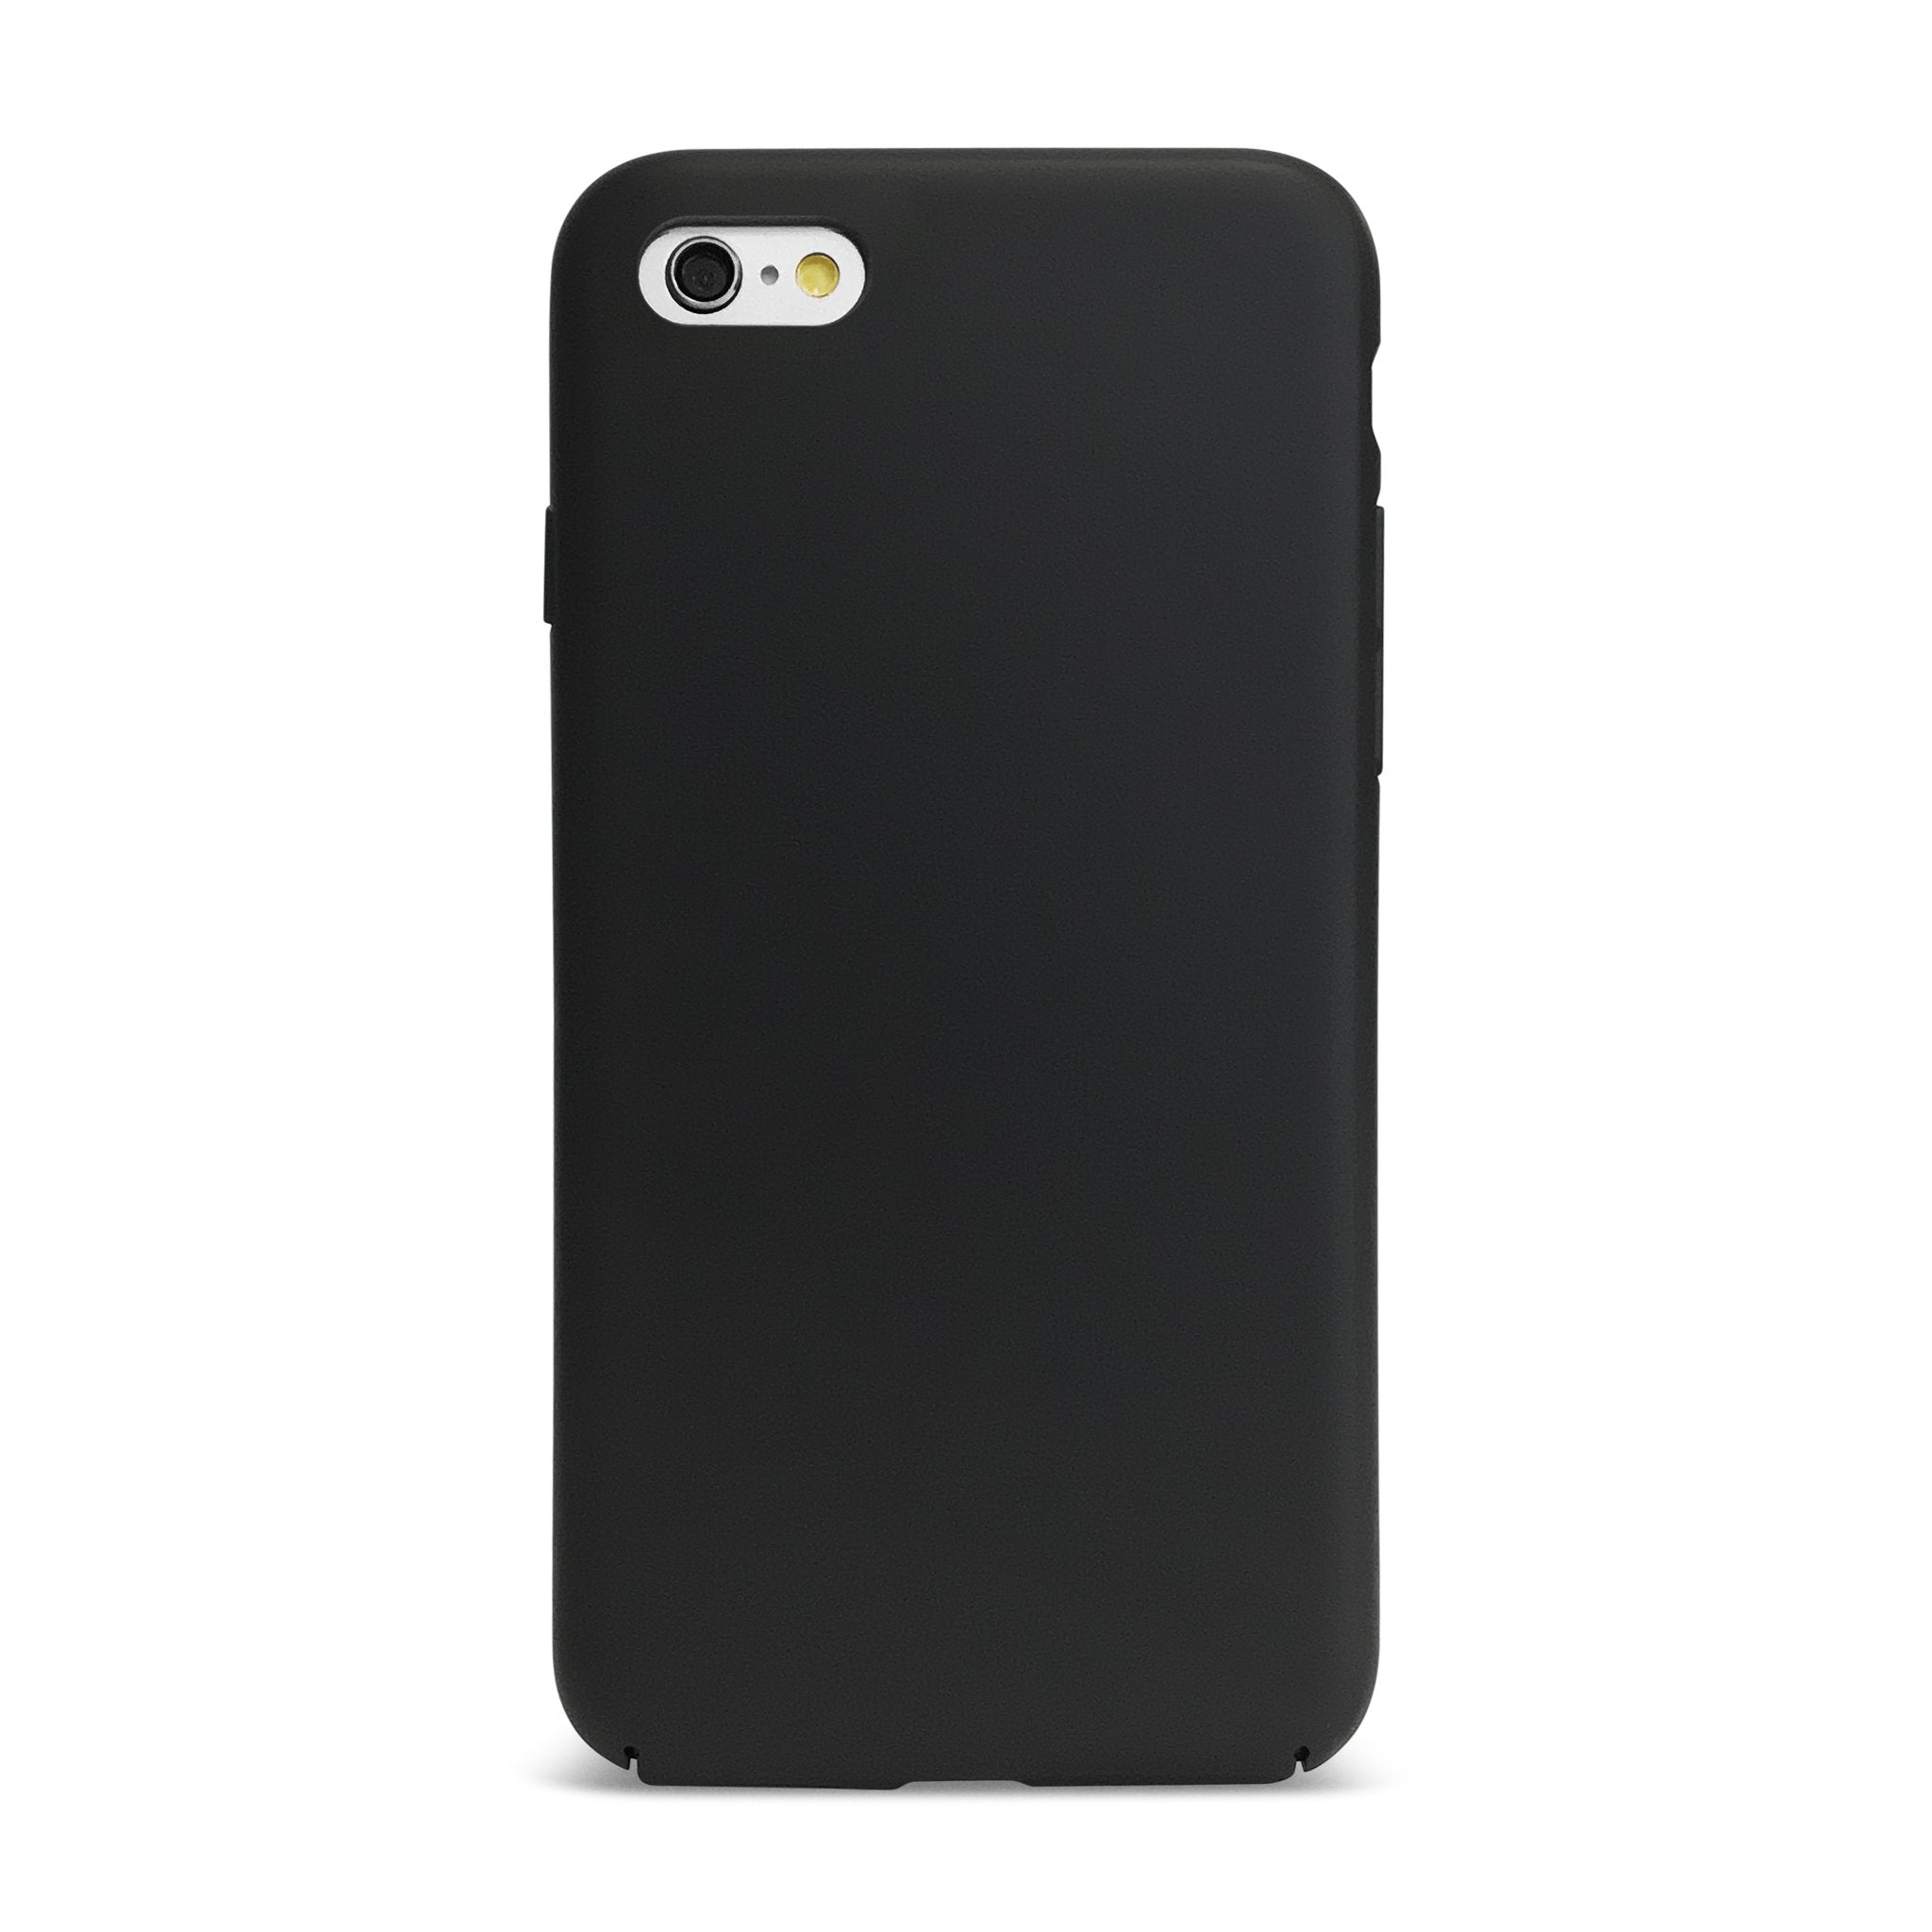 half off cb575 0143f Classic iPhone 6 Plus Armor